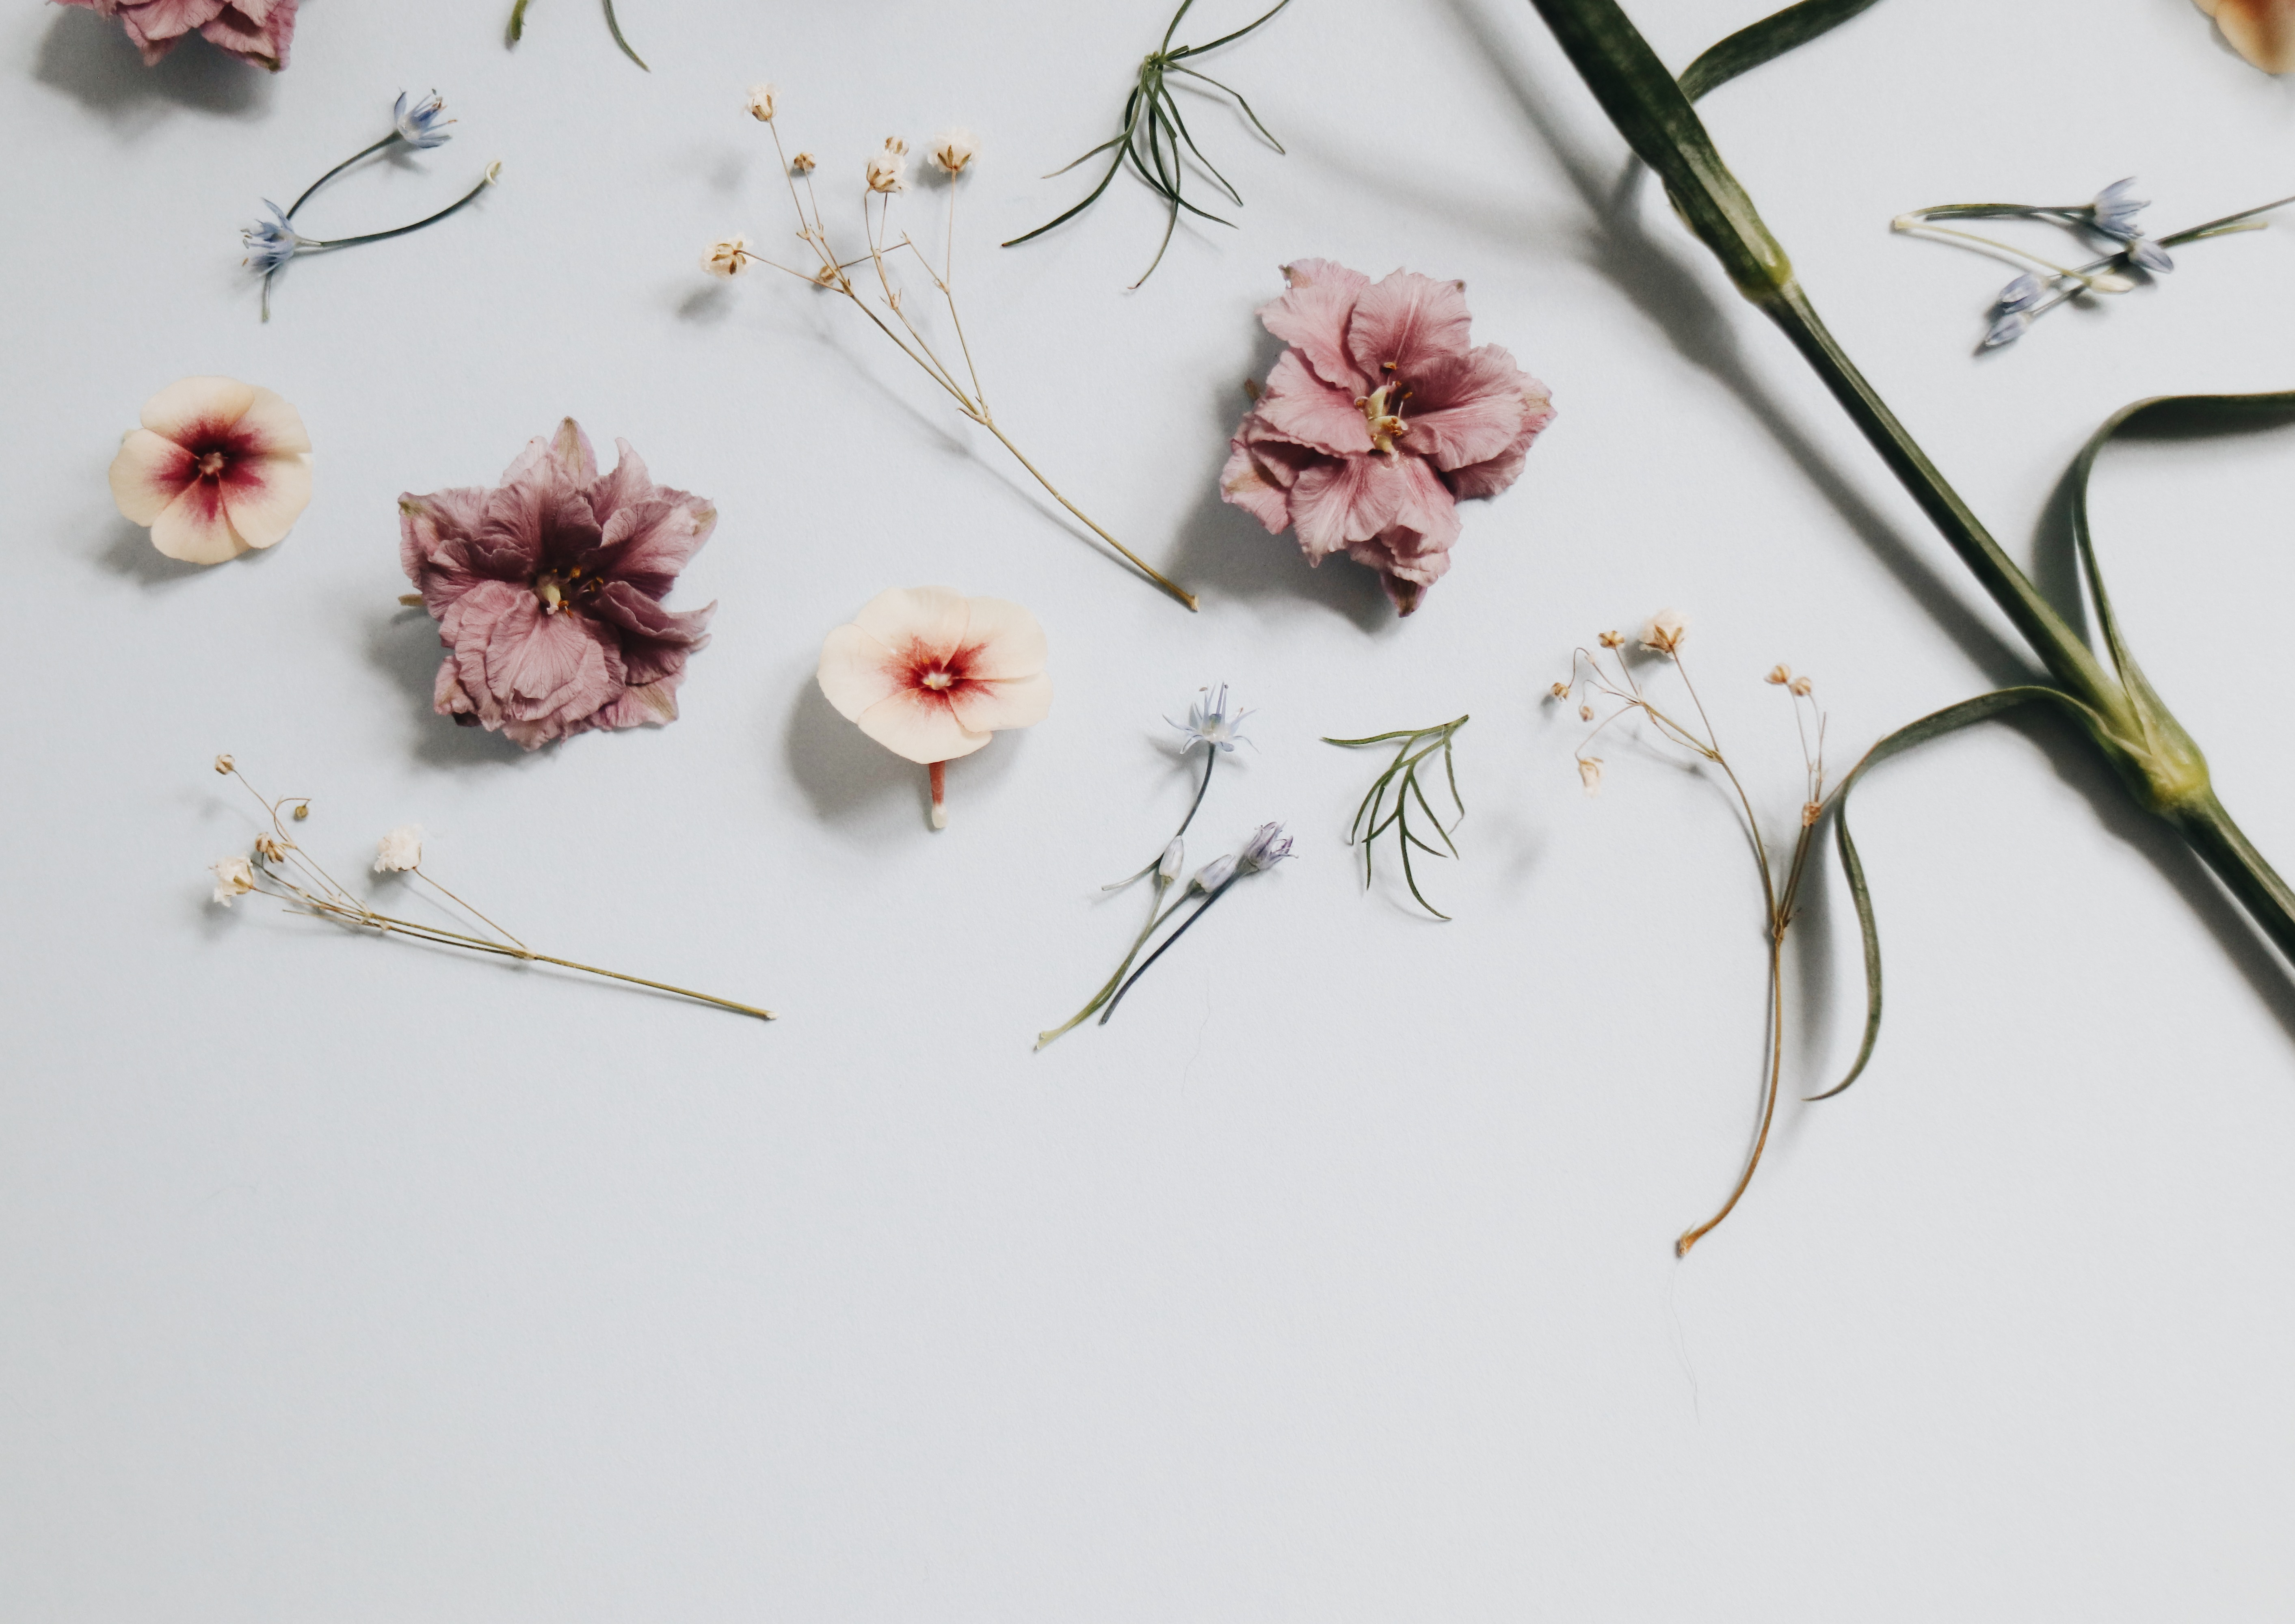 Cute Wallpapers For Lockers 100 Minimalist Pictures Download Free Images On Unsplash